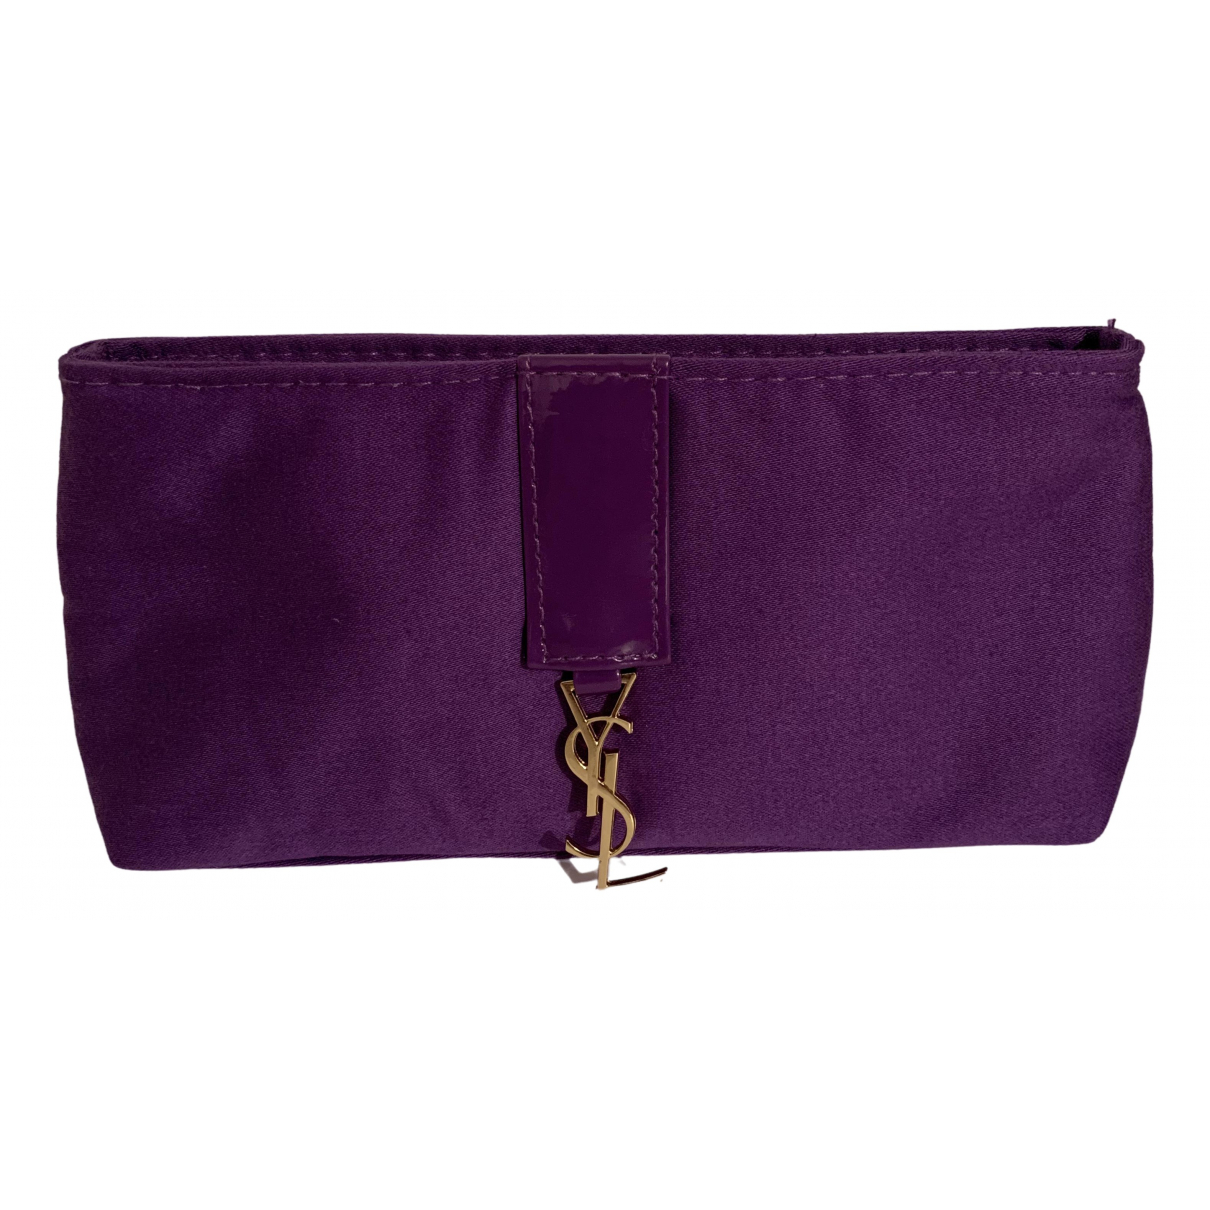 Yves Saint Laurent \N Purple Cotton Clutch bag for Women \N